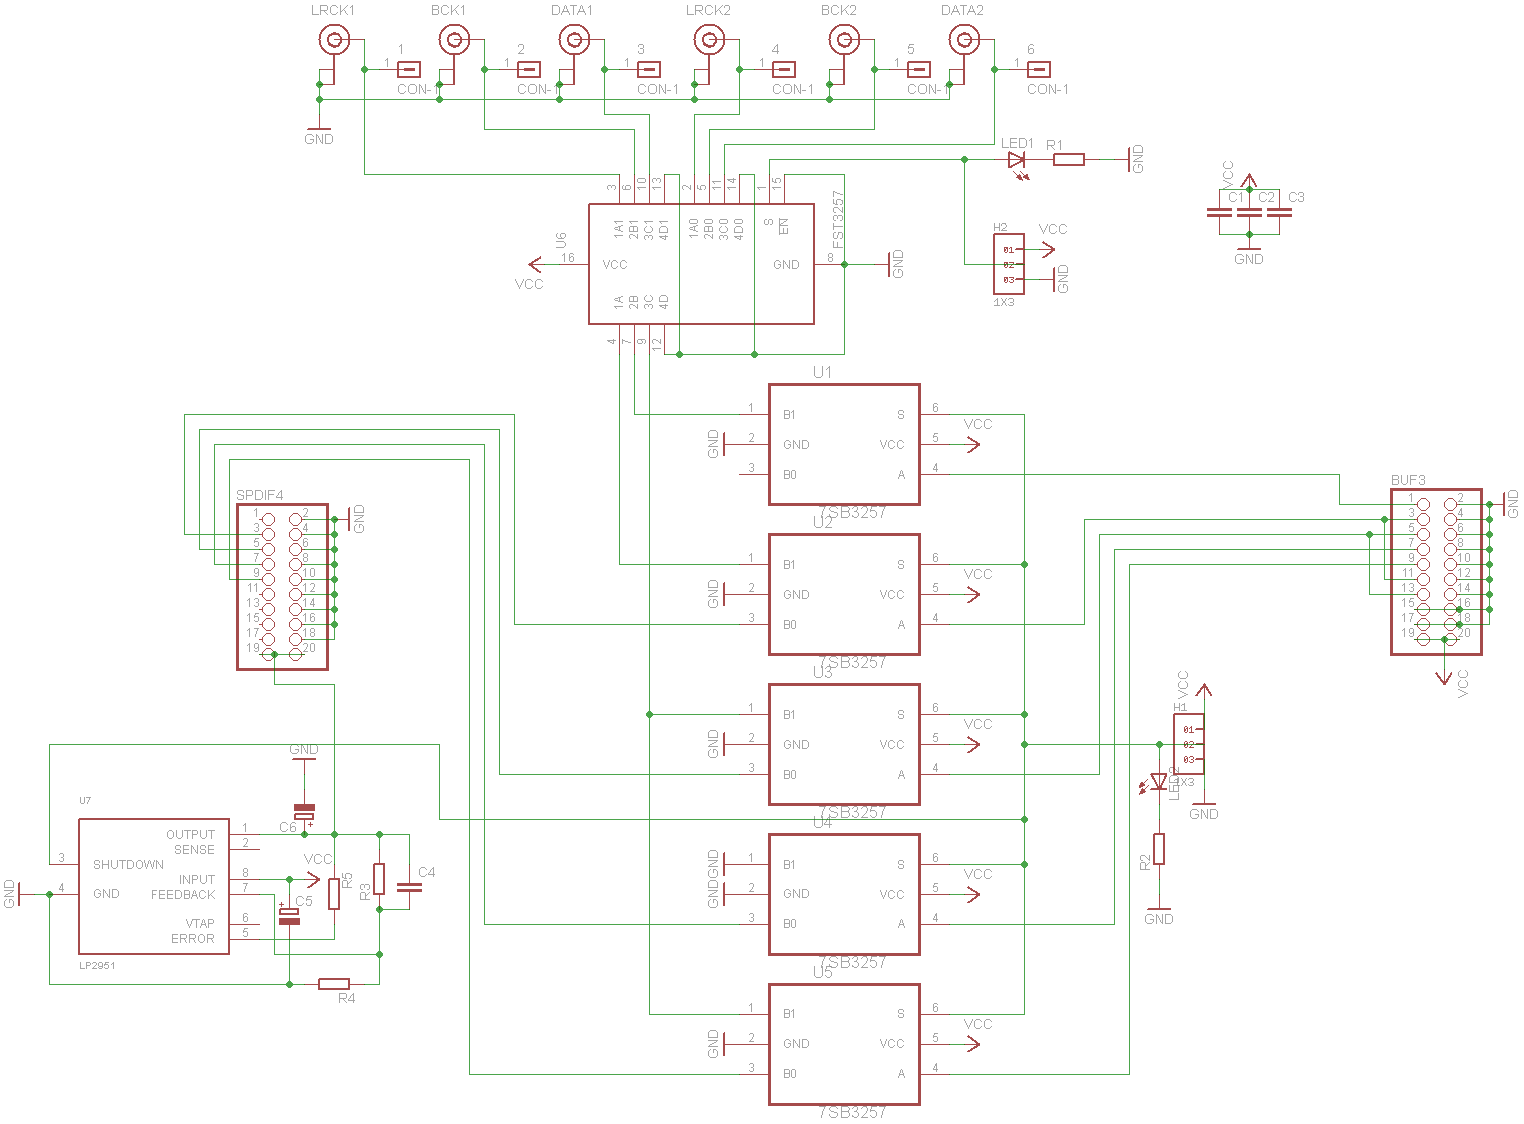 S.S.S. Schematic v1.1